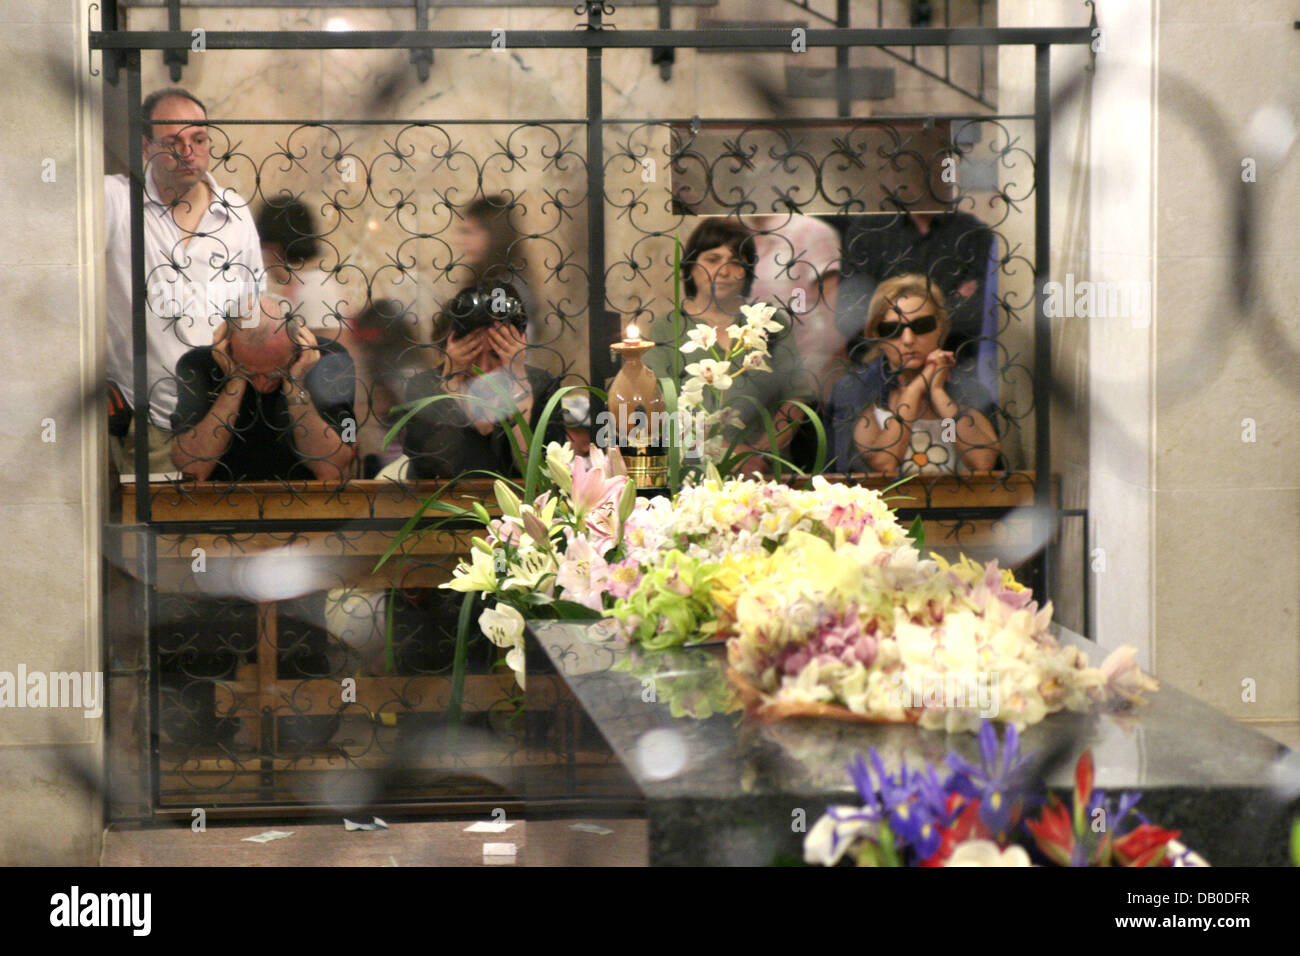 Devout Catholics pray at the tomb of Padre Pio at the crypta of San Giovanni Rotondo, Italy, 12 May 2007.  Padre - Stock Image